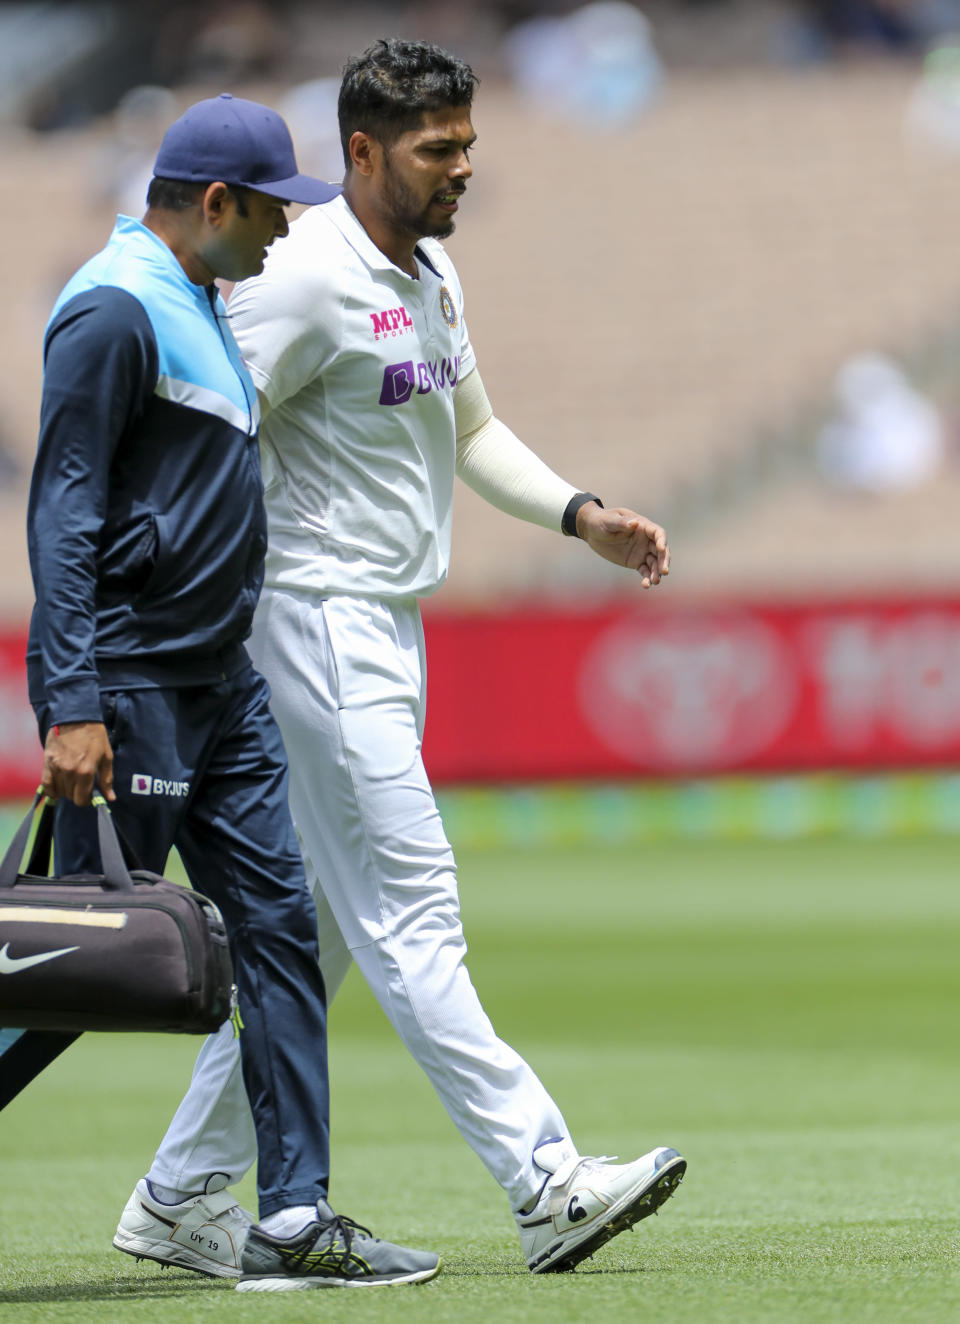 India's Umesh Yadav, right, walks from the field for treatment during play on day three of the second cricket test between India and Australia at the Melbourne Cricket Ground, Melbourne, Australia, Monday, Dec. 28, 2020. (AP Photo/Asanka Brendon Ratnayake)